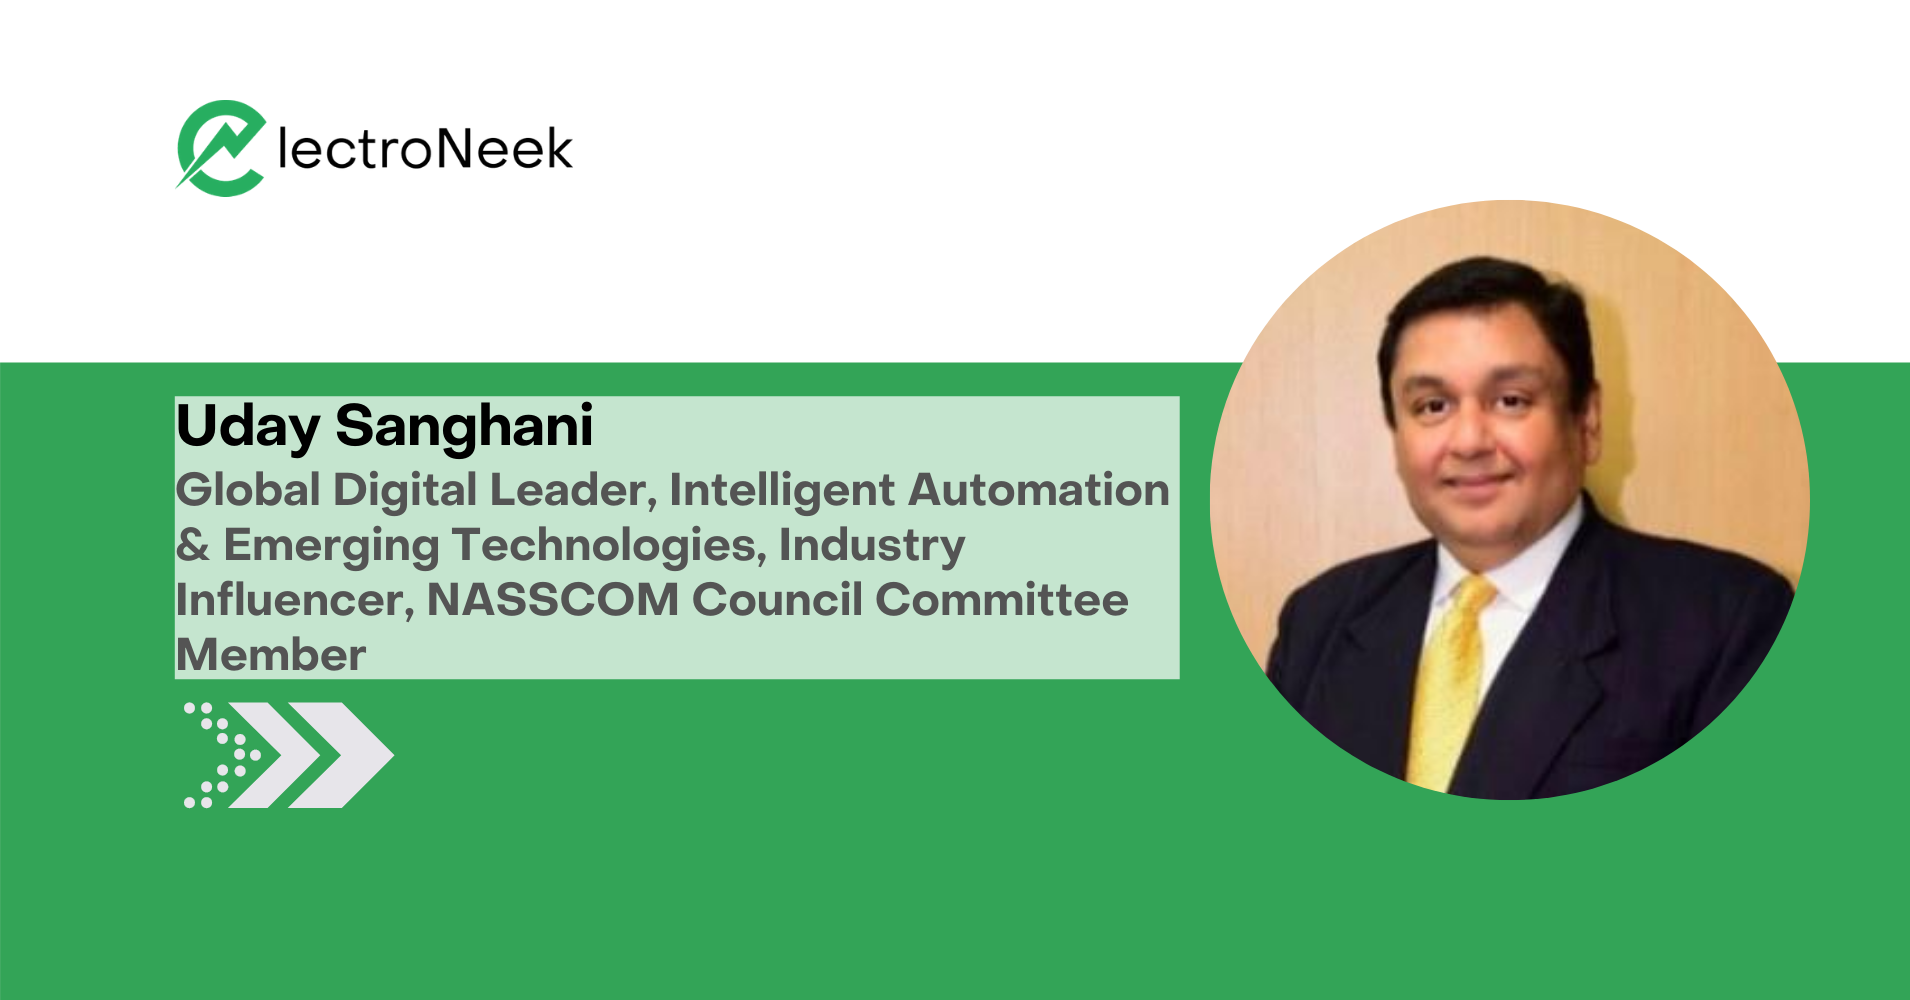 """Uday Sanghani: RPA Legend on """"Blind Spots"""" in Automation Journey and Bots Becoming New Types of Workers"""